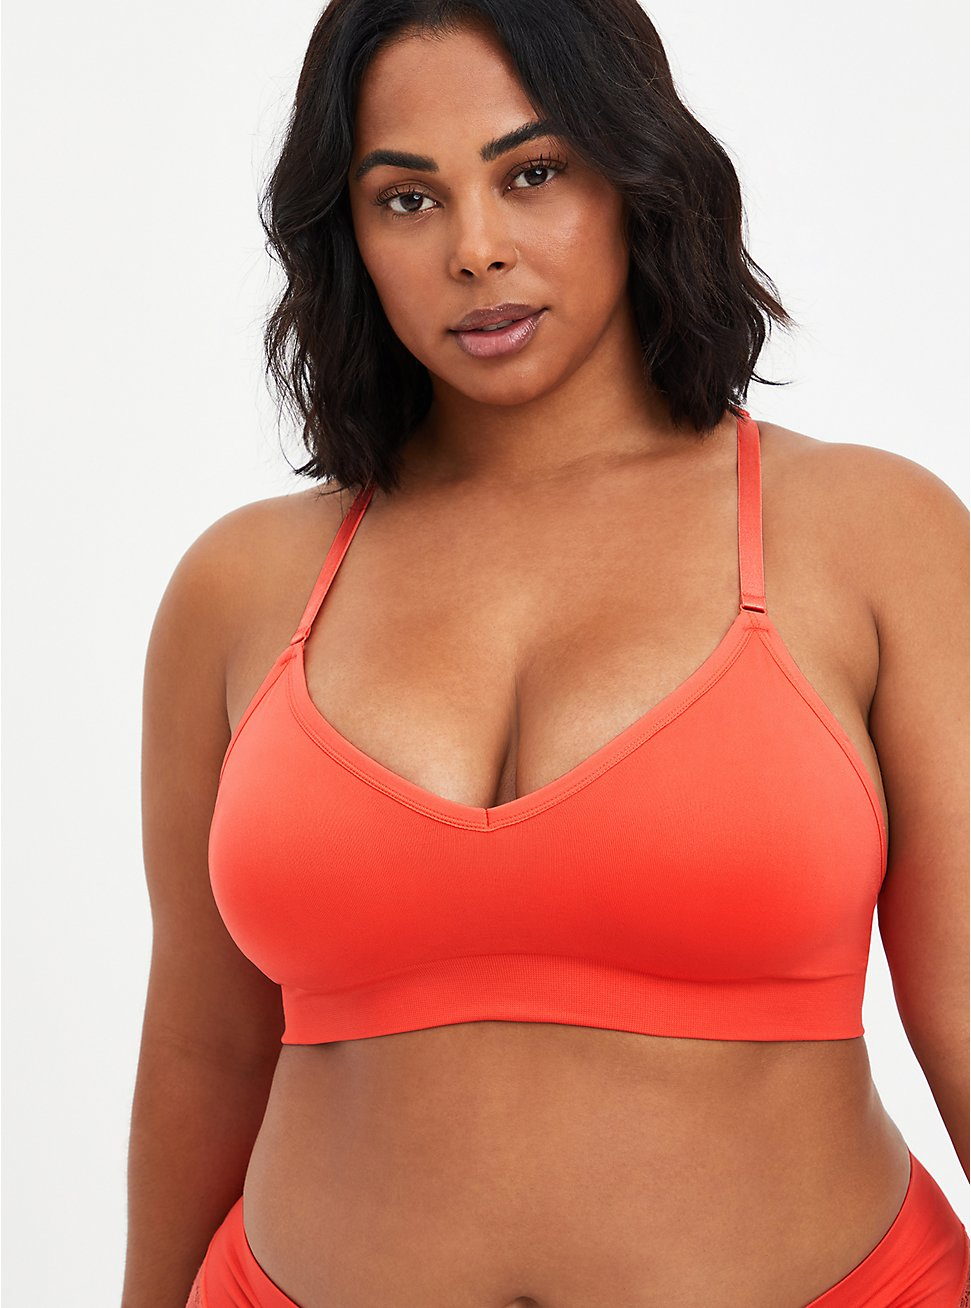 Racerback Lightly Padded Seamless Flirt Bralette - Coral Lace, CORAL, hi-res